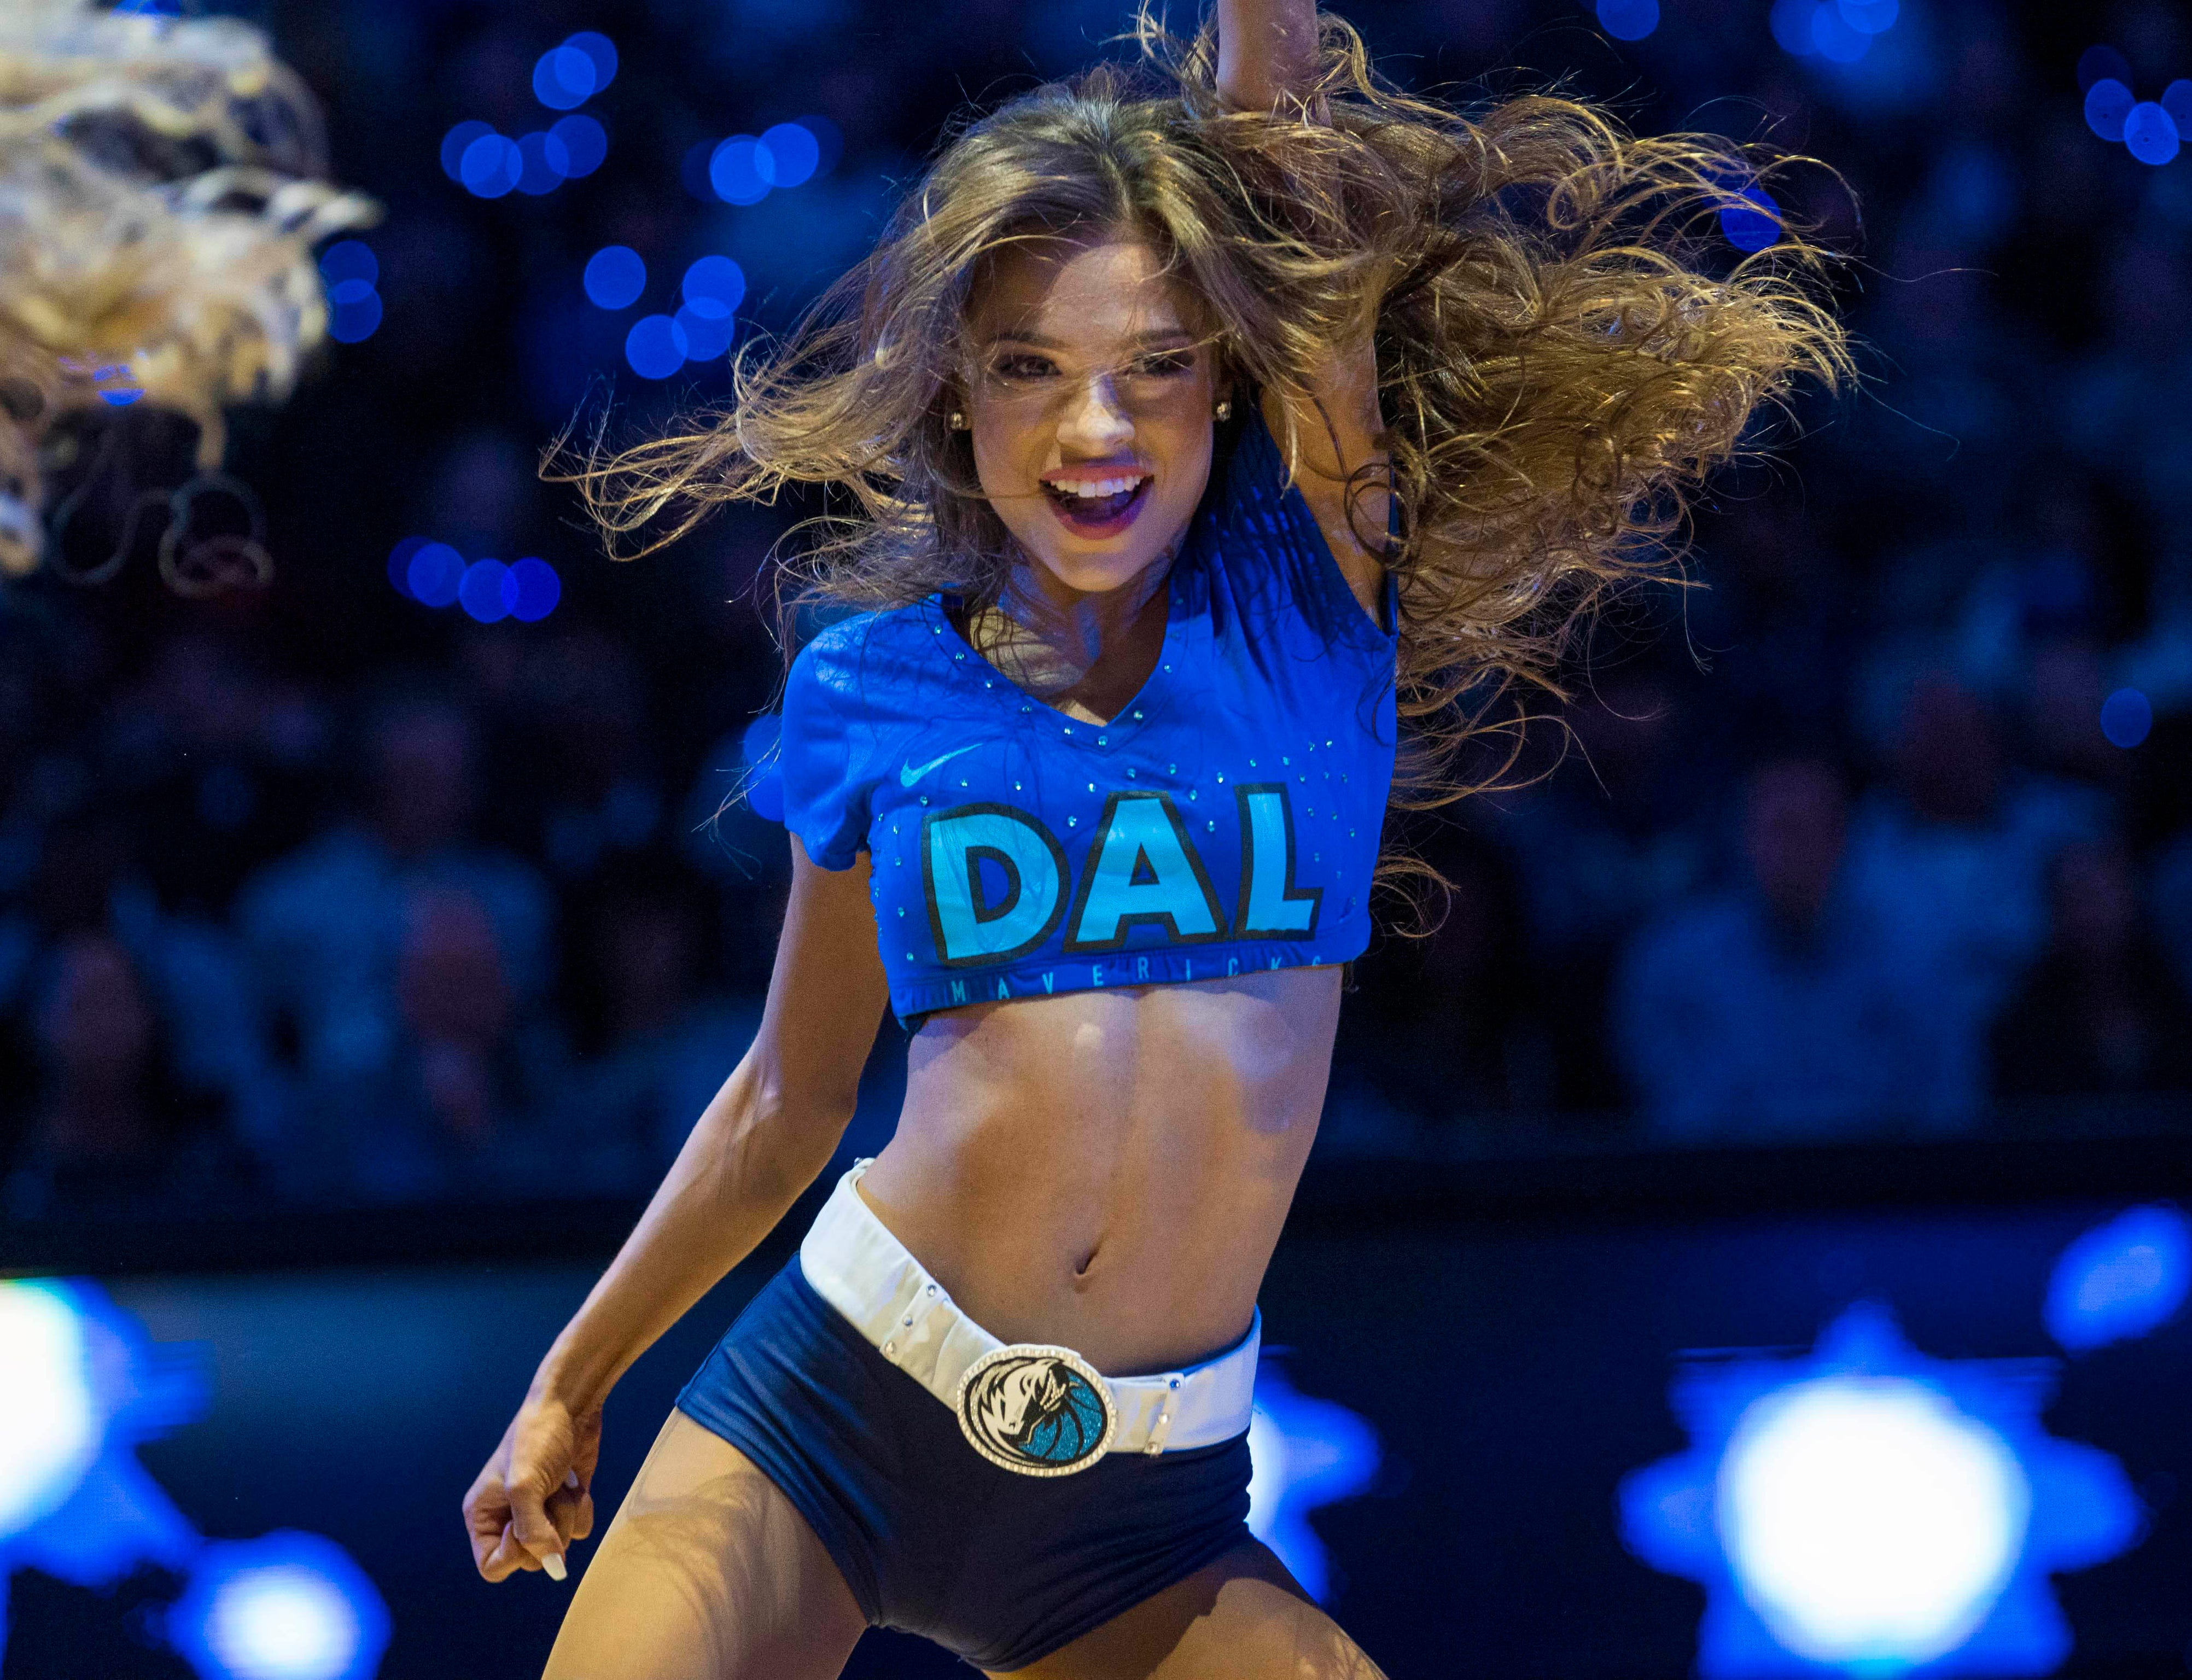 Jan. 16: Mavericks dancers fire up the crowd during a stop in play against the Spurs.